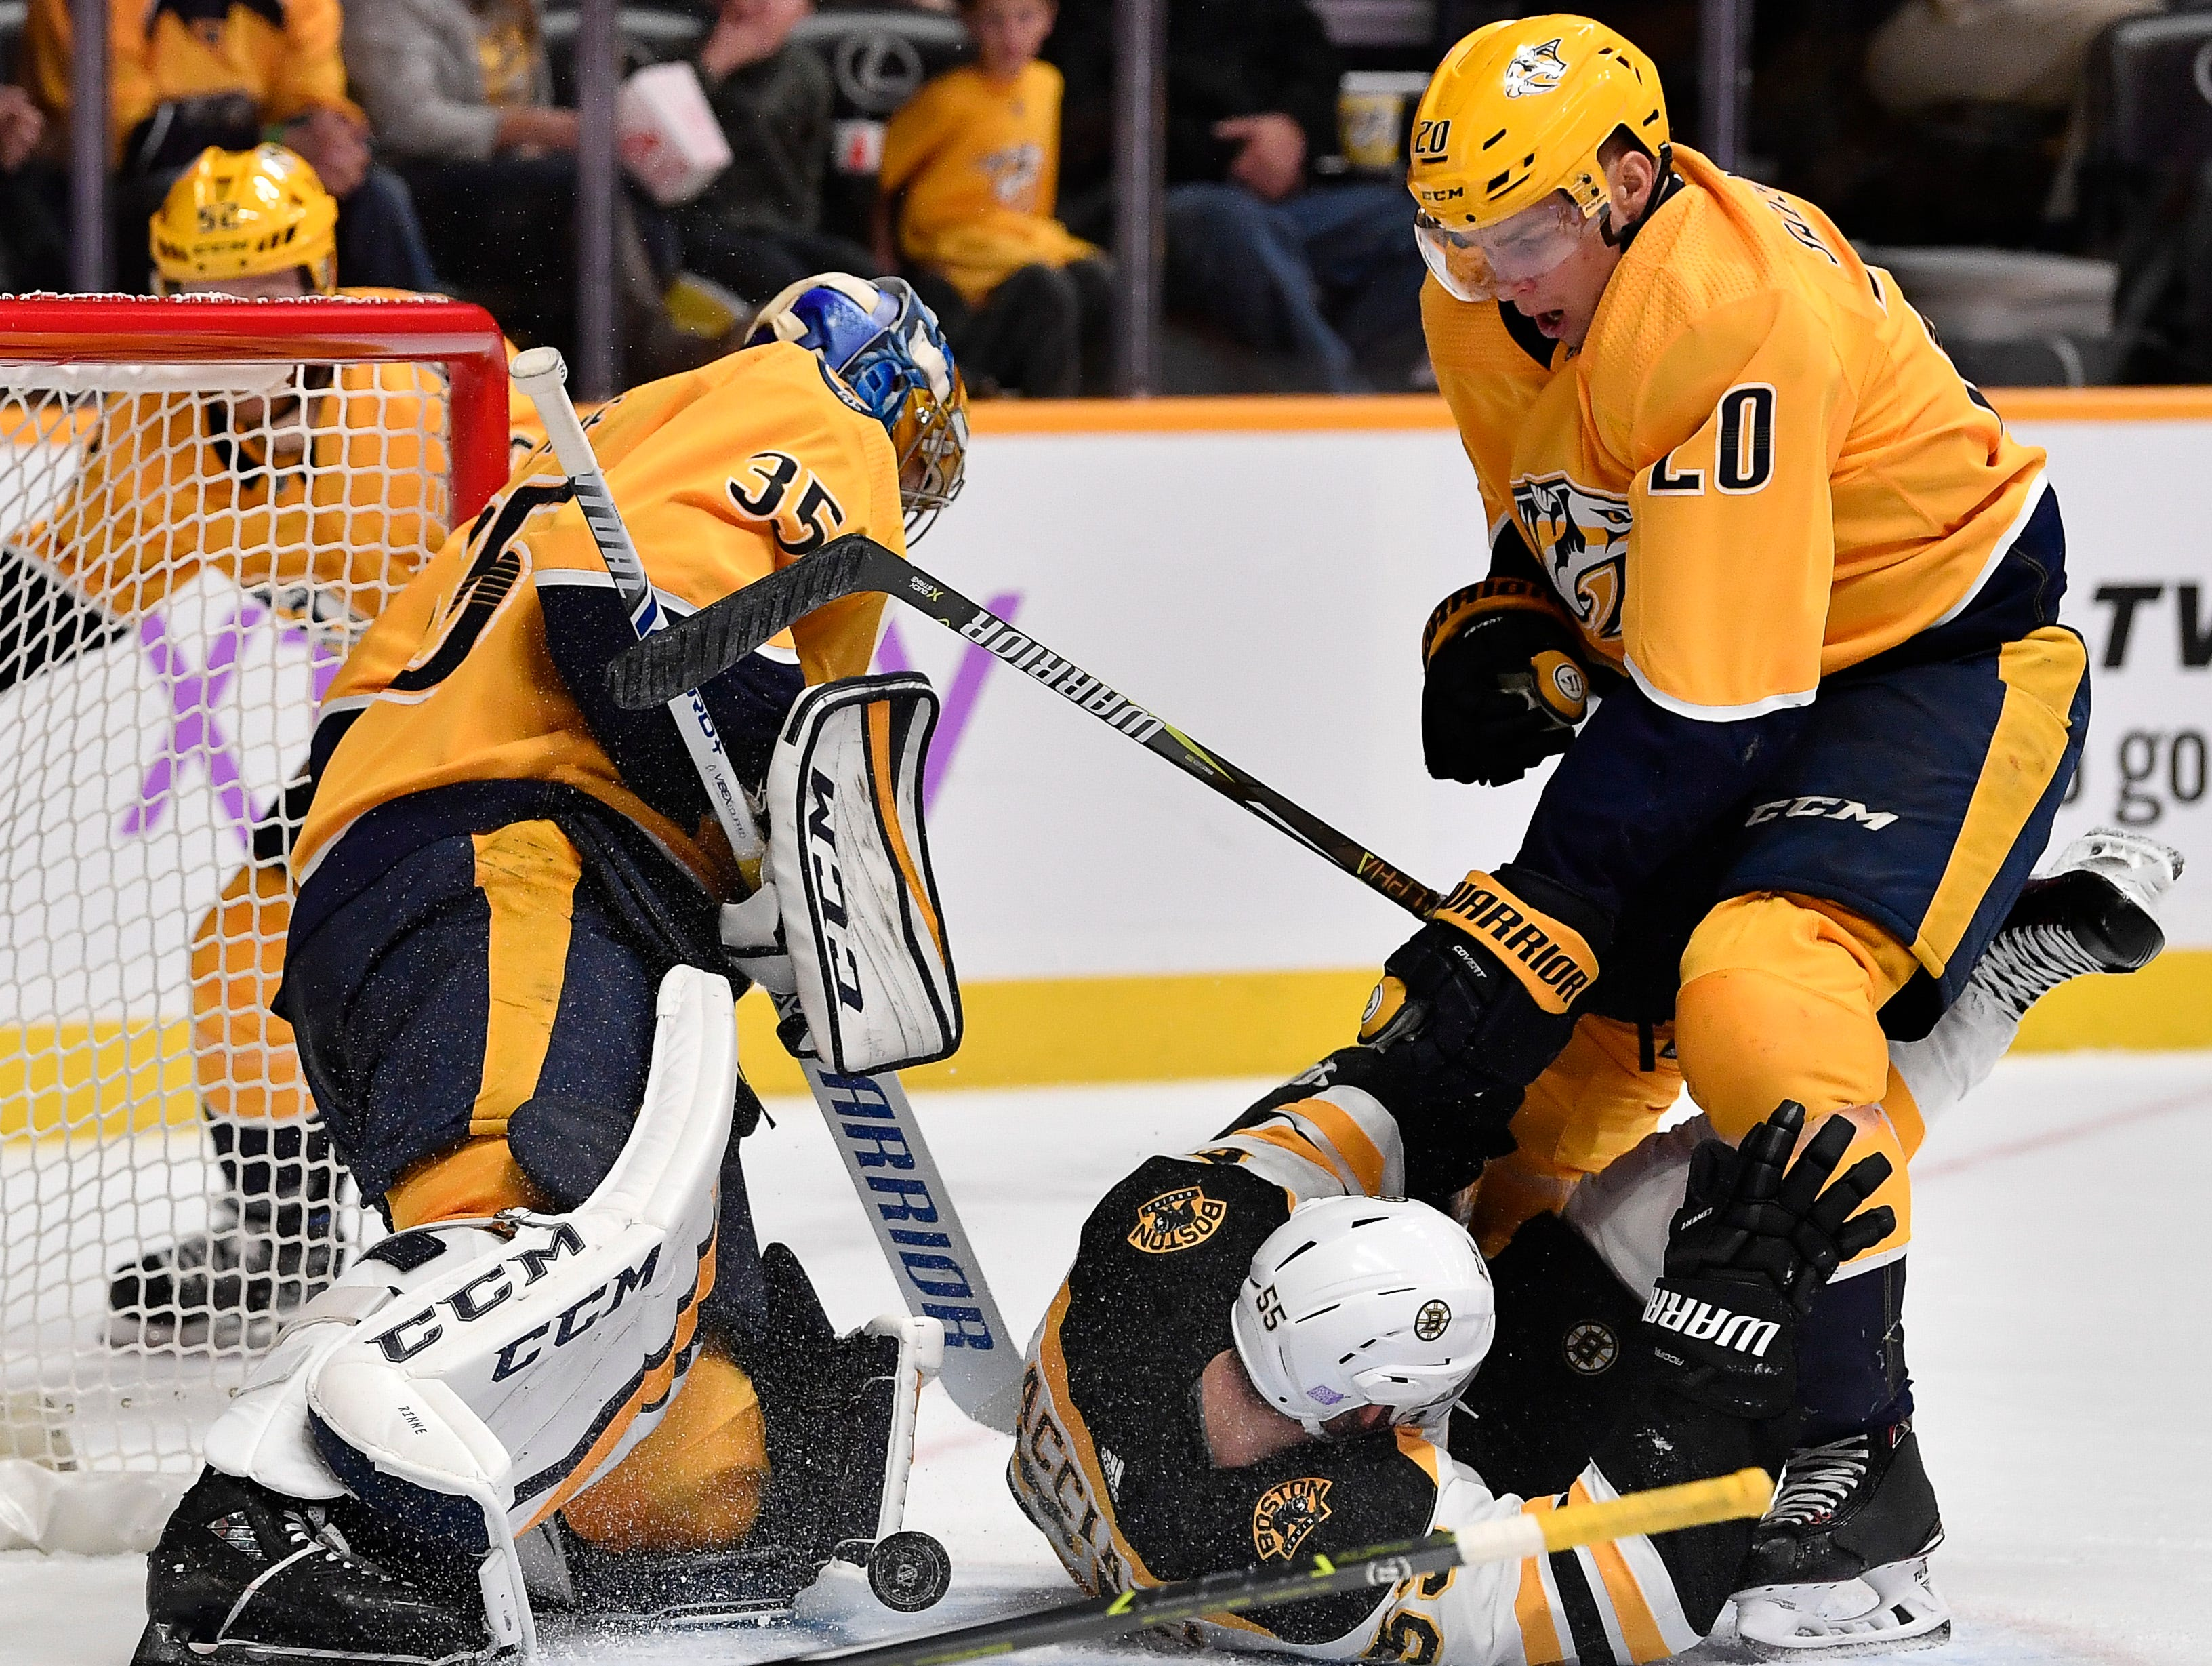 Predators goaltender Pekka Rinne (35) and right wing Miikka Salomaki (20) defend the goal and stop the puck as Bruins center Noel Acciari (55) tries to score during the second period at Bridgestone Arena Saturday, Nov. 3, 2018, in Nashville, Tenn.